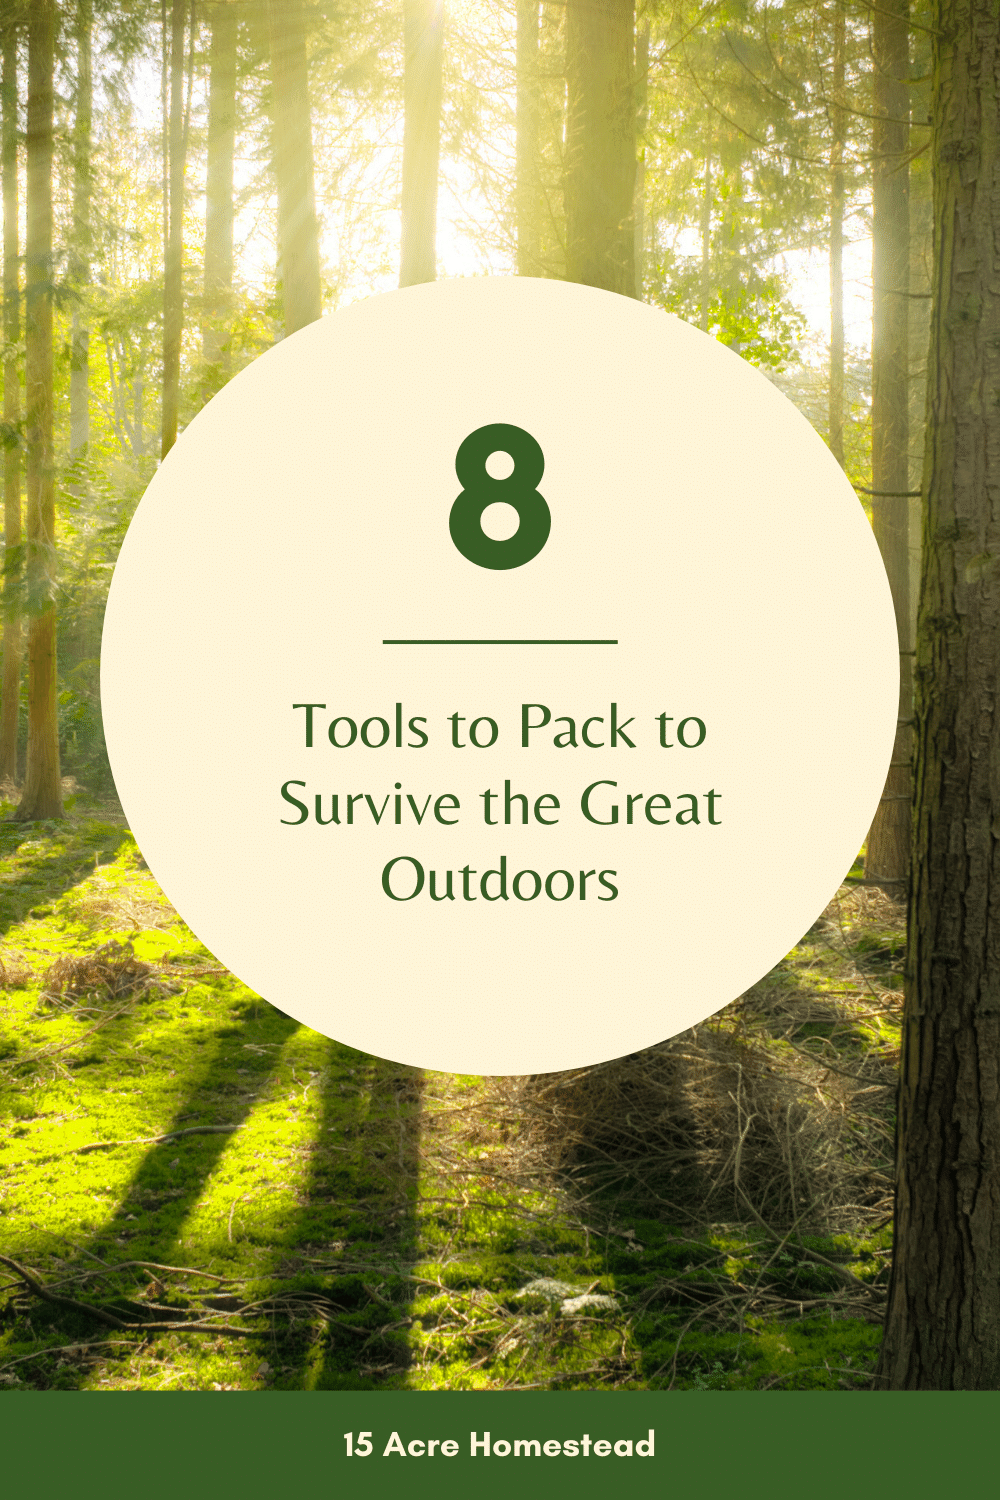 If you're going to explore the great outdoors it is important to pack these 8 important tools that are important to your survival.